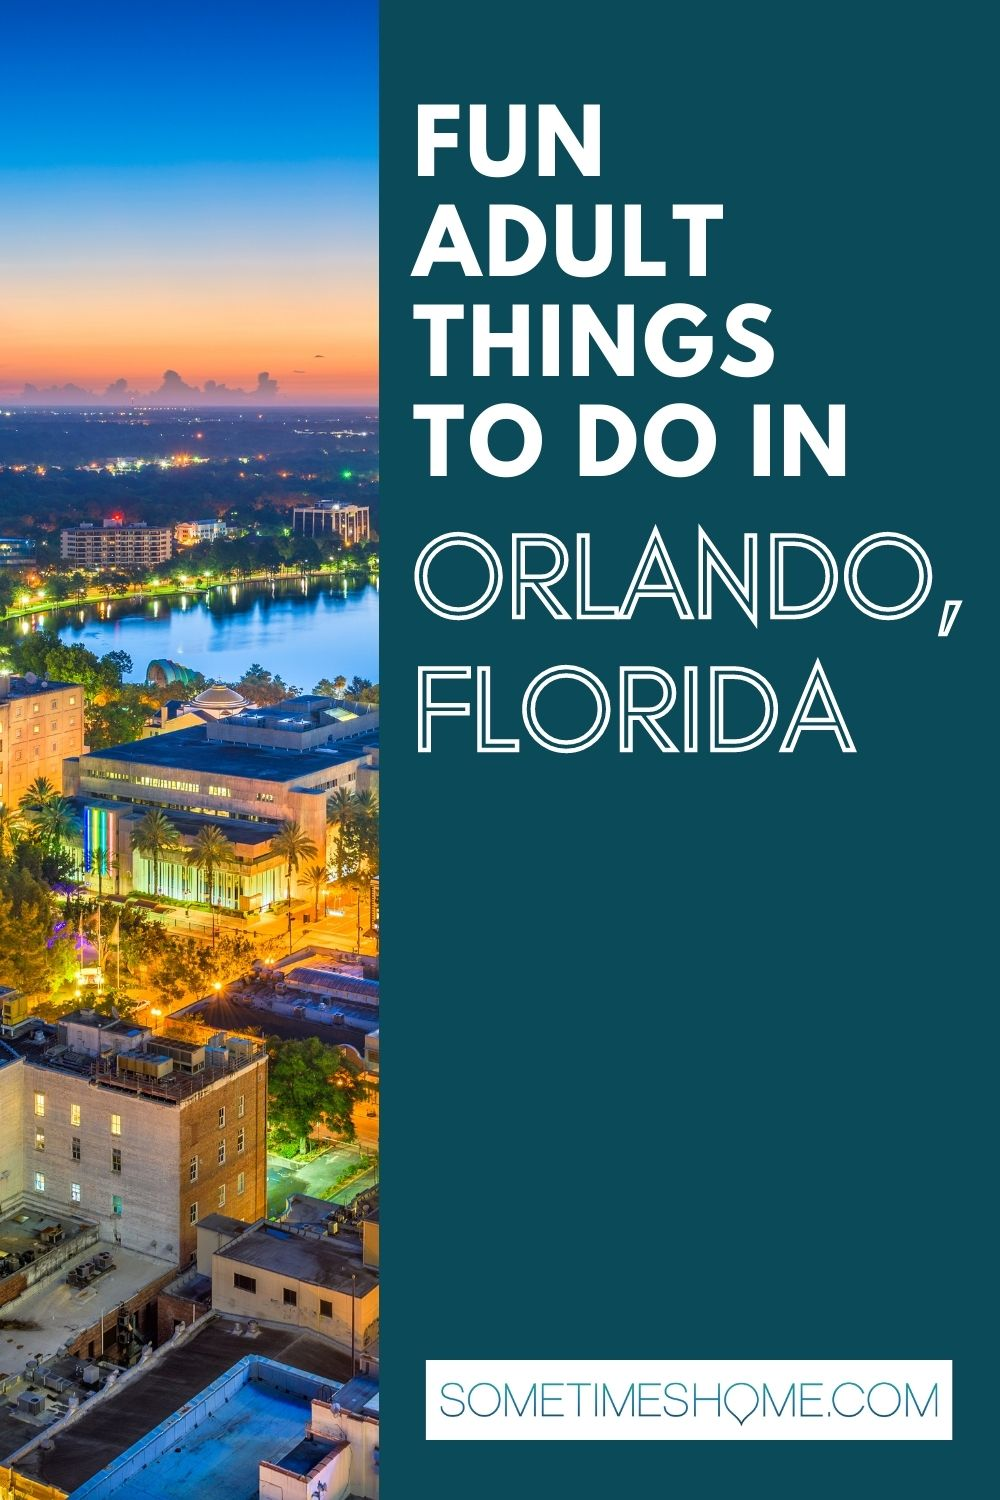 Fun adult thing to do in Orlando, Florida with a photo of downtown Orlando at night on the left.